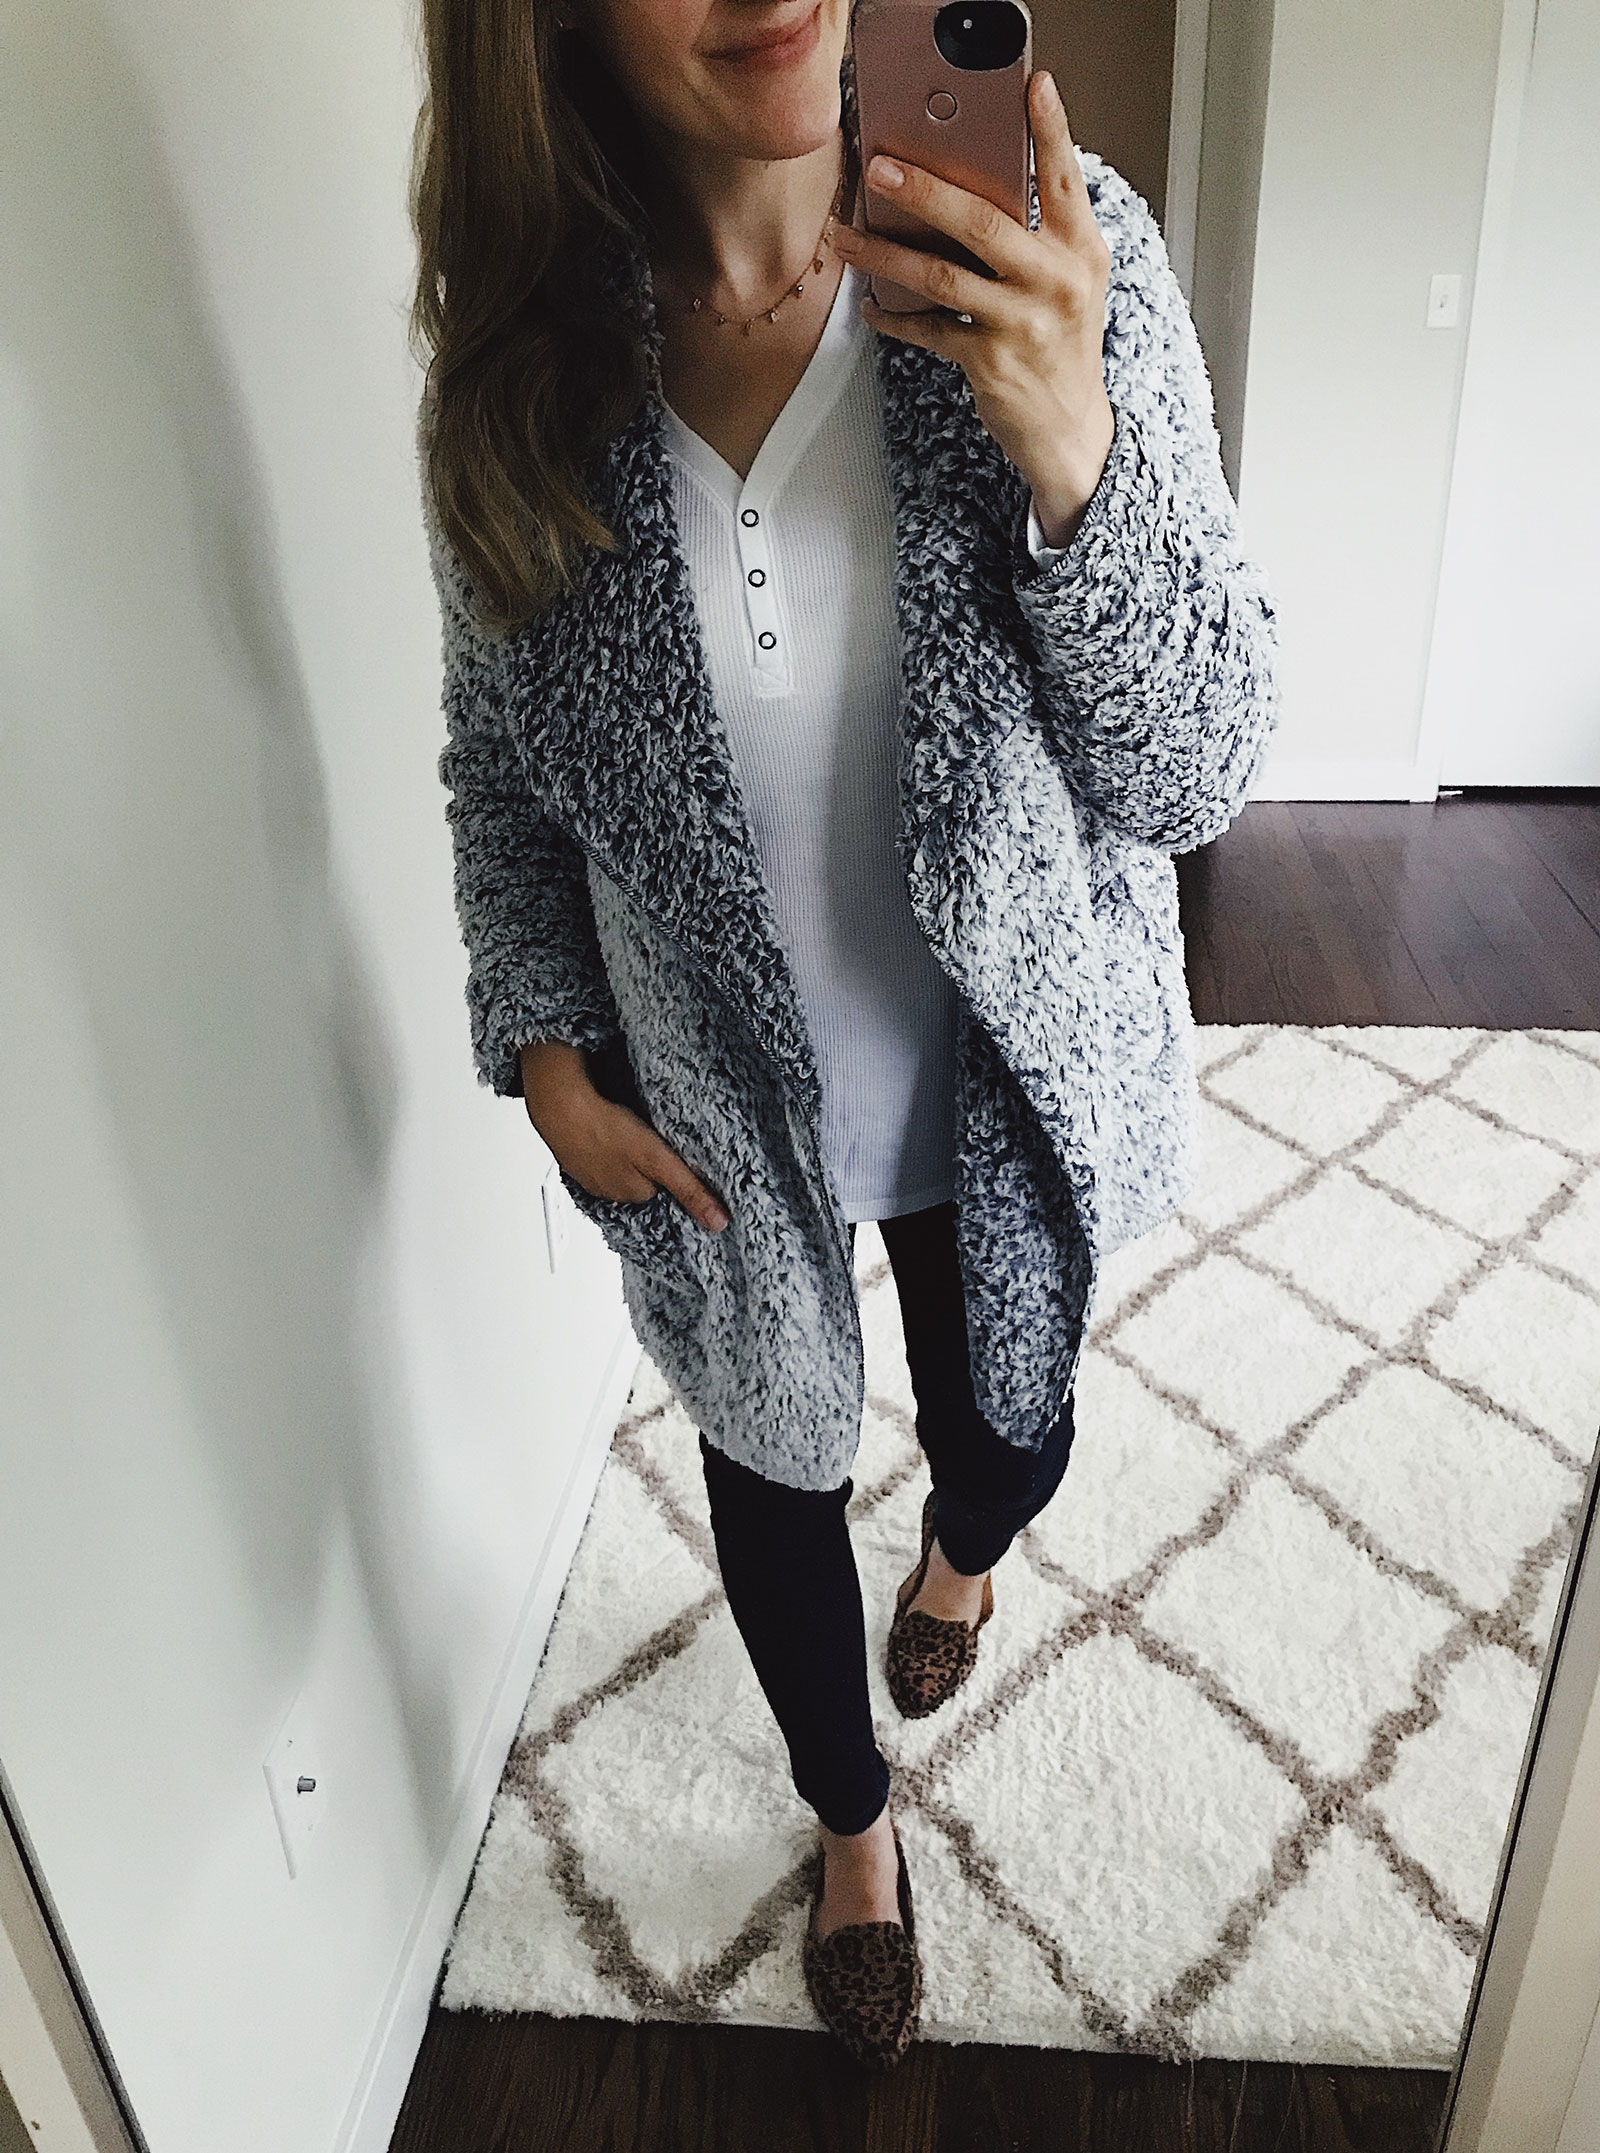 Need this cozy cardigan! Just $12.88 at Walmart of all places